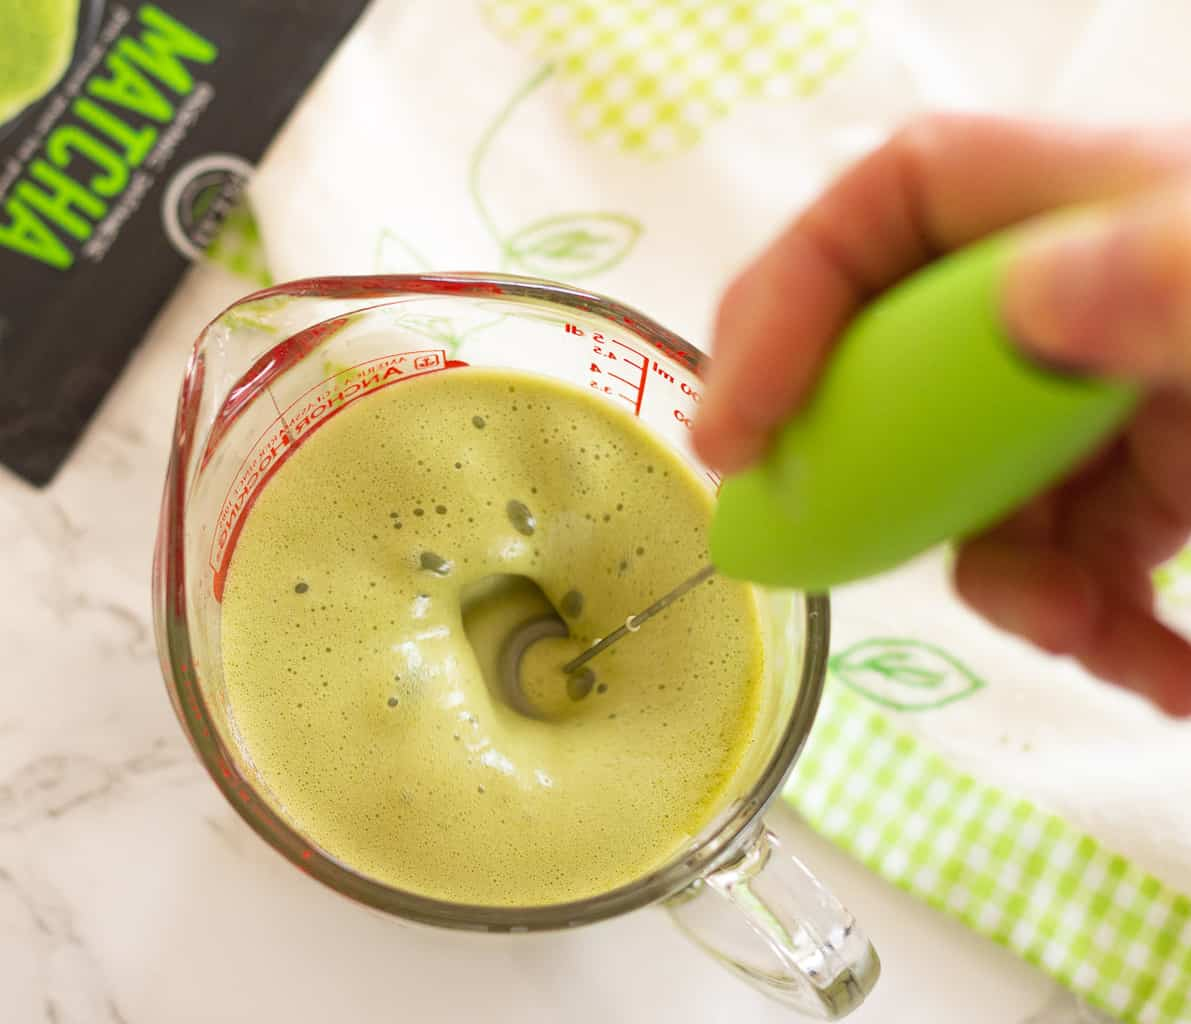 foaming matcha latte in a measuring cup using a green handheld milk frother.